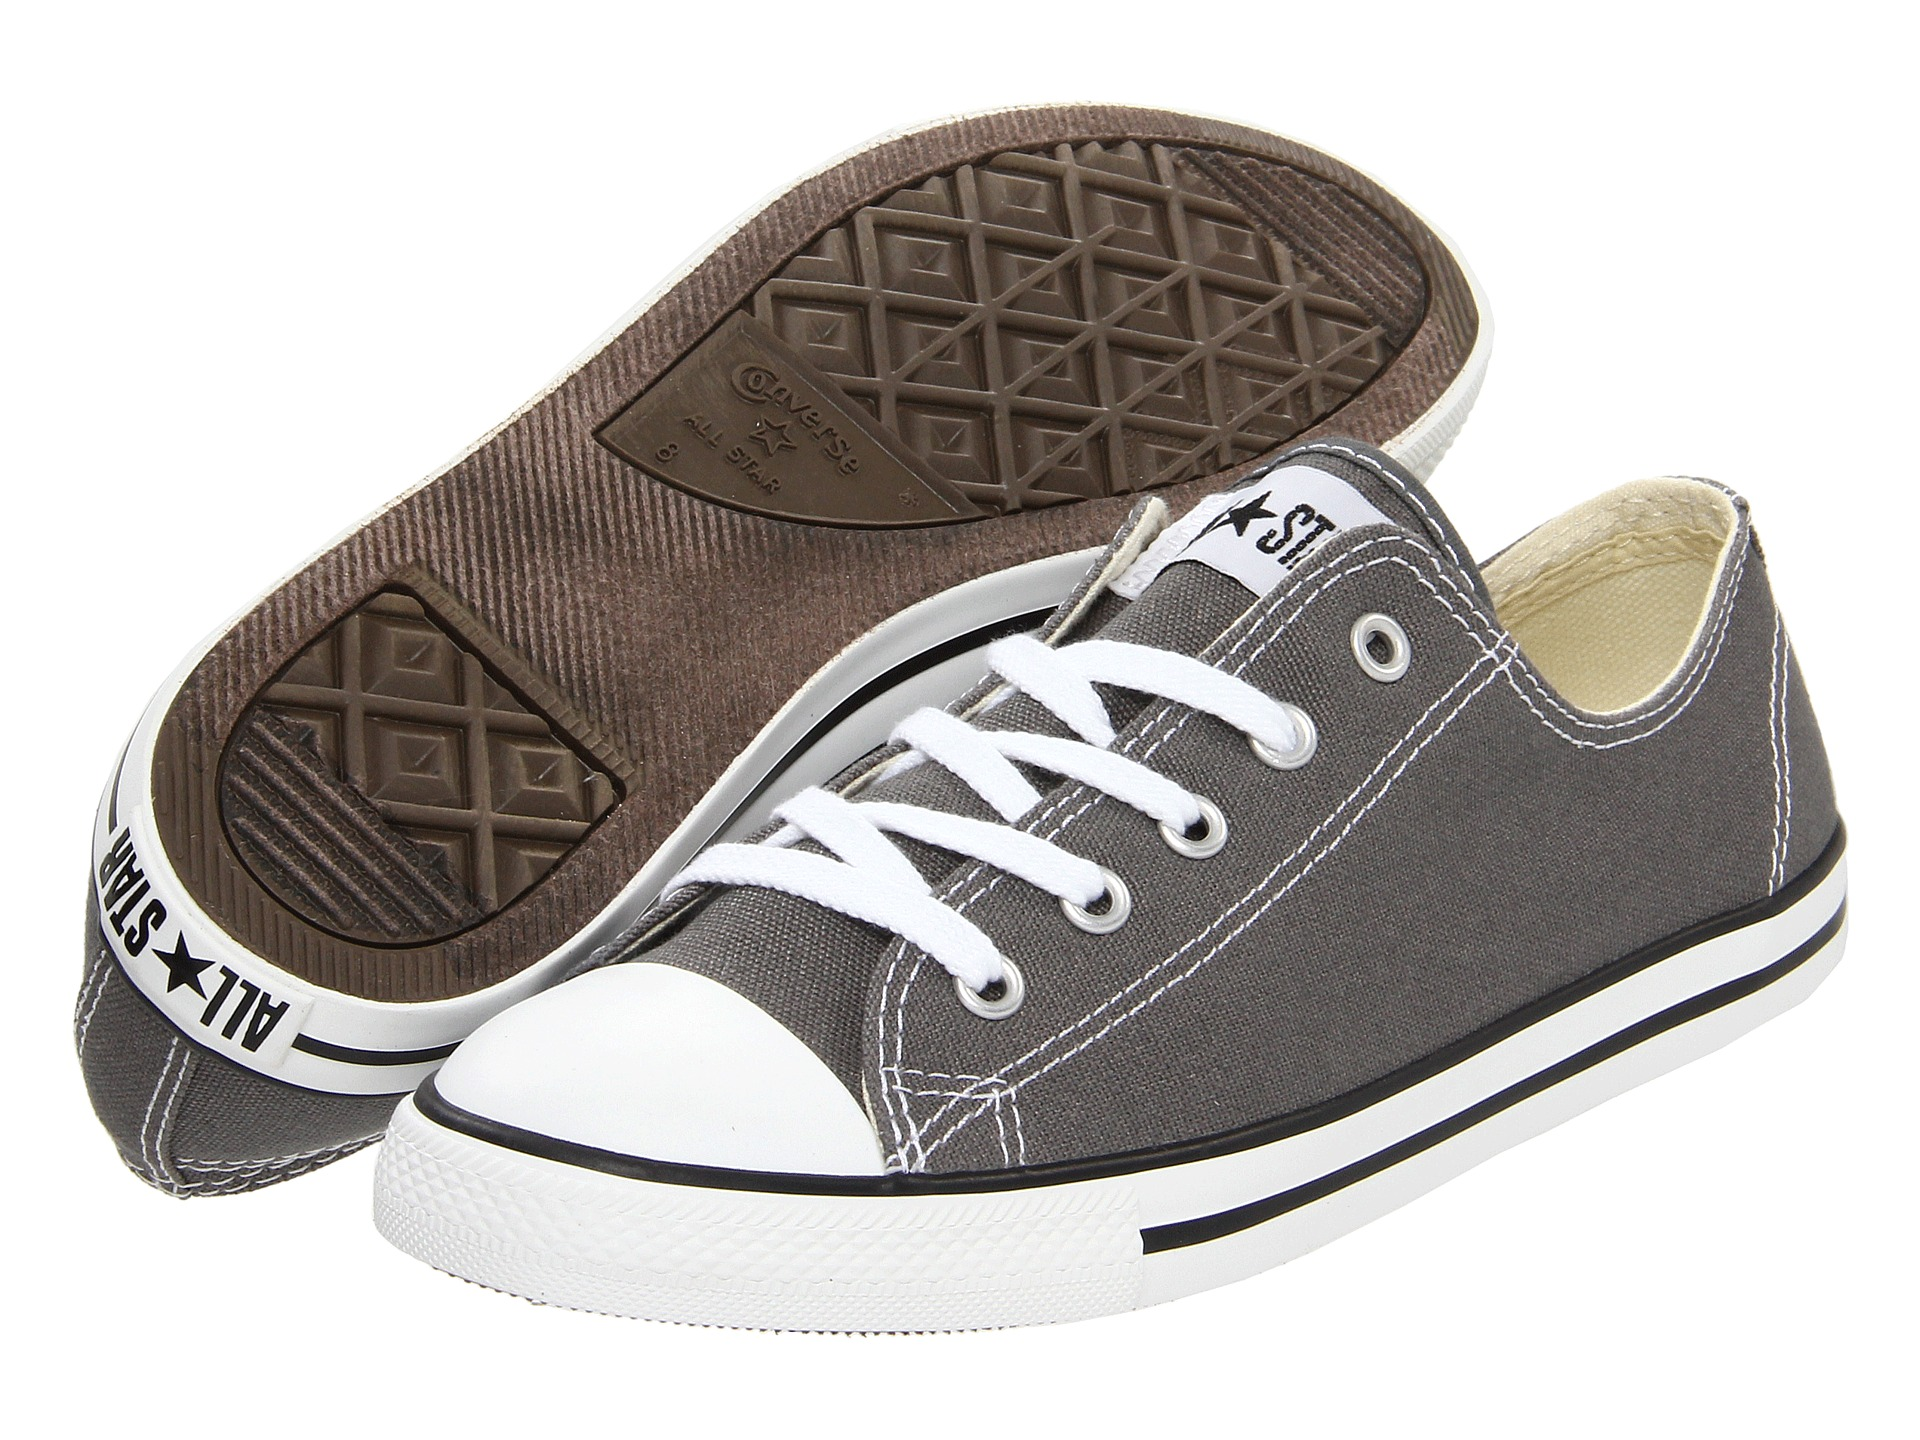 converse chuck taylor all star dainty ox at. Black Bedroom Furniture Sets. Home Design Ideas